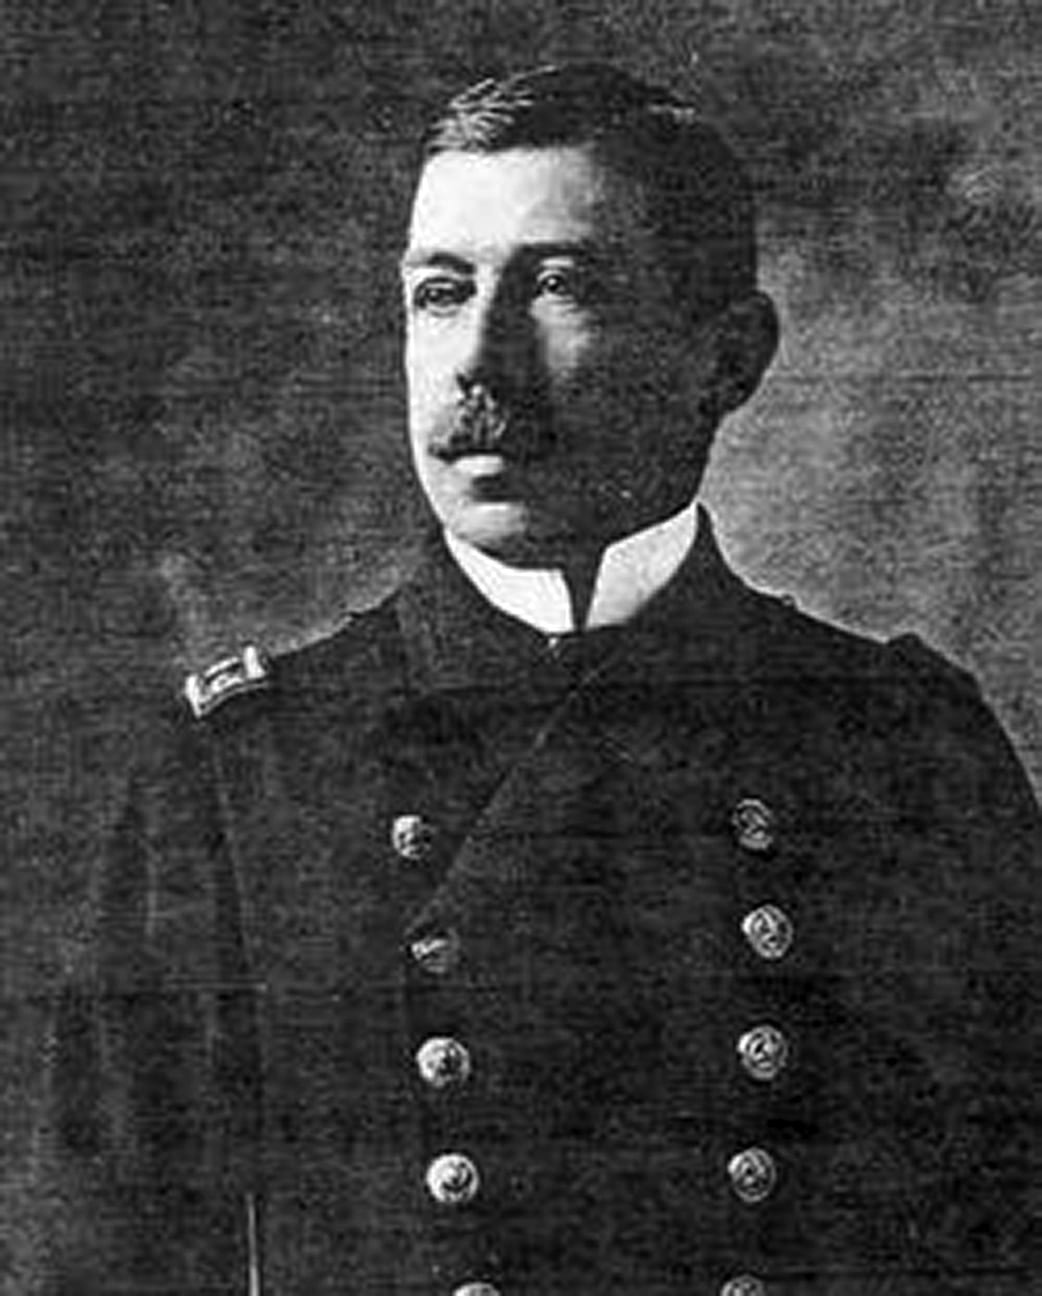 American Samoa's Naval Governor Cmdr. Poyer. His strict quarantine saved American Samoa from the disaster that befell its British neighbor.